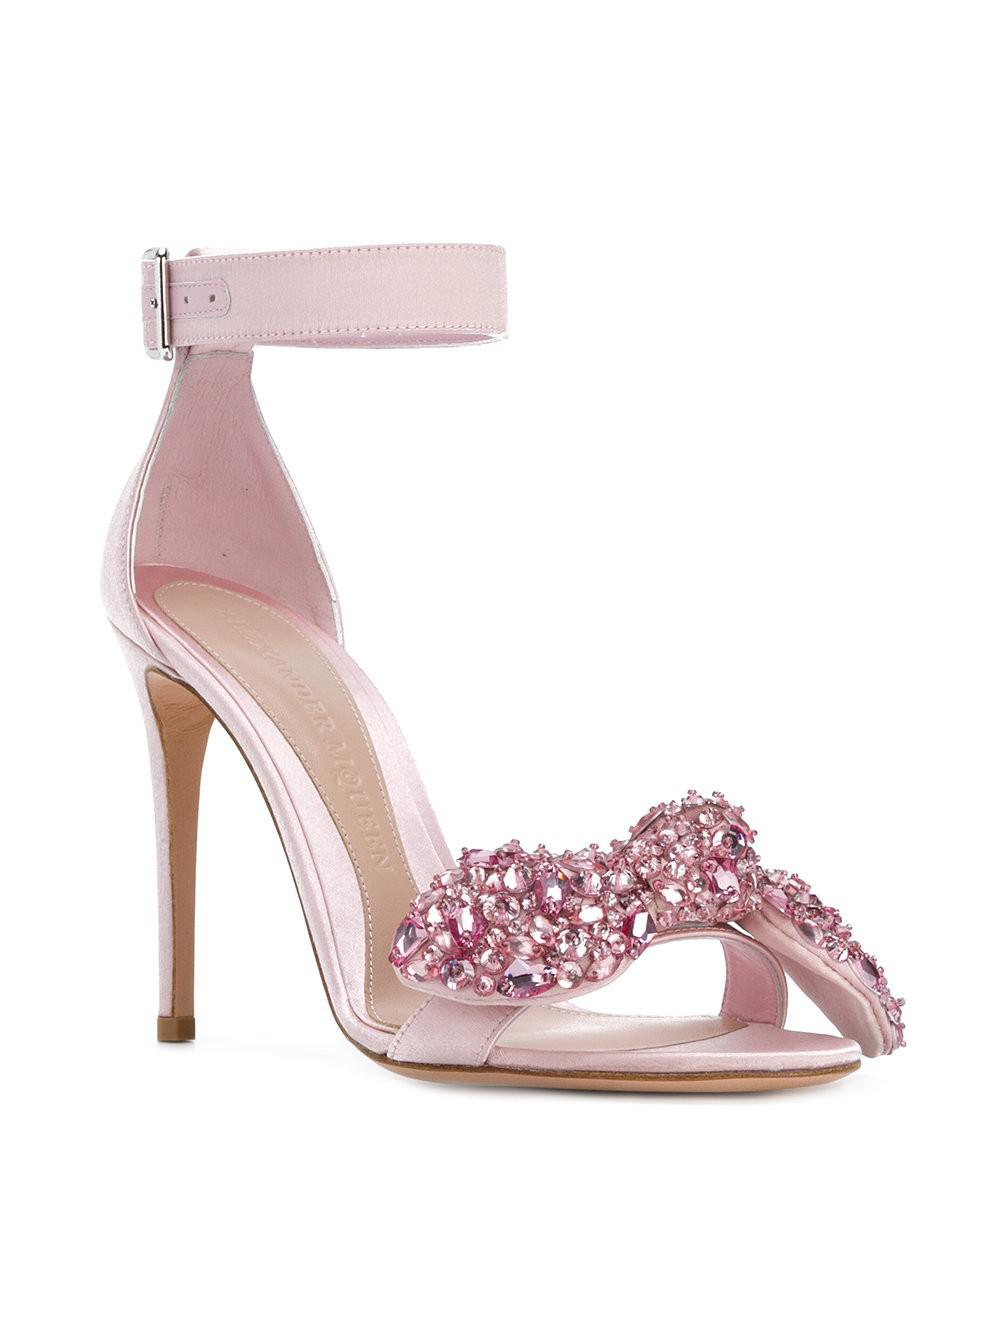 embellished sandals - Pink & Purple Alexander McQueen